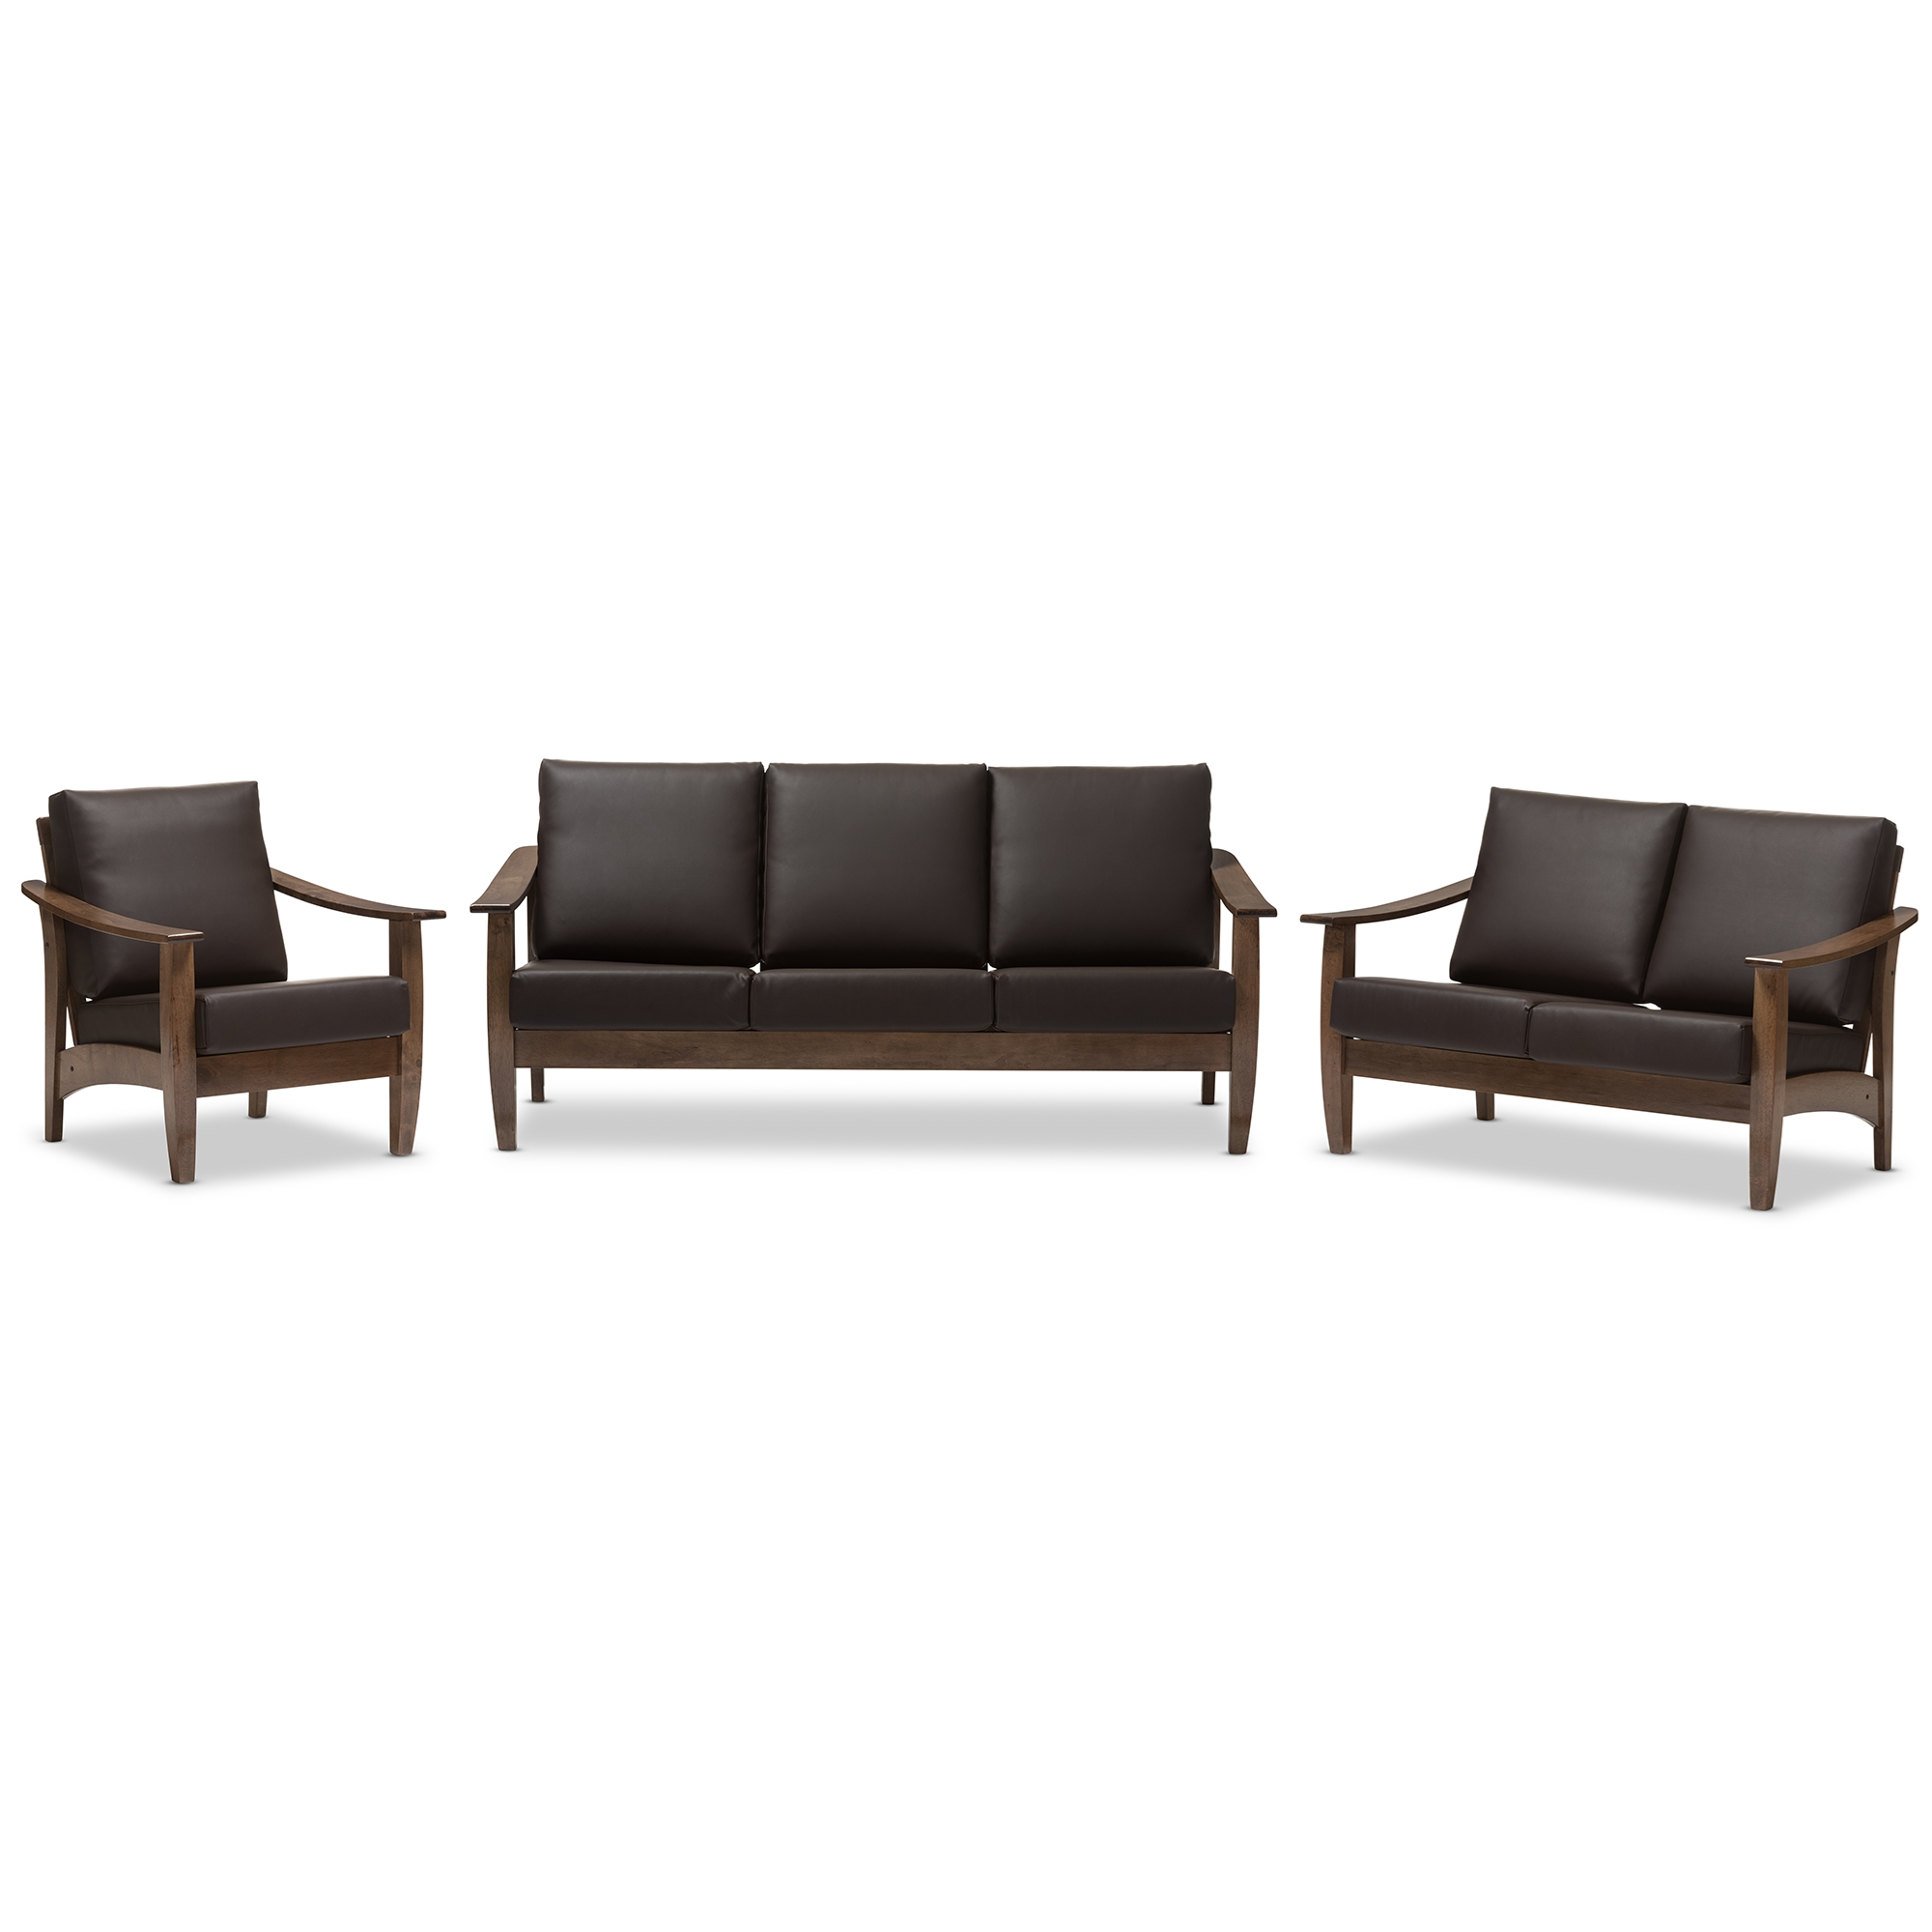 Baxton Studio Pierce Mid Century Modern Walnut Brown Wood And Dark Brown Faux Leather Living